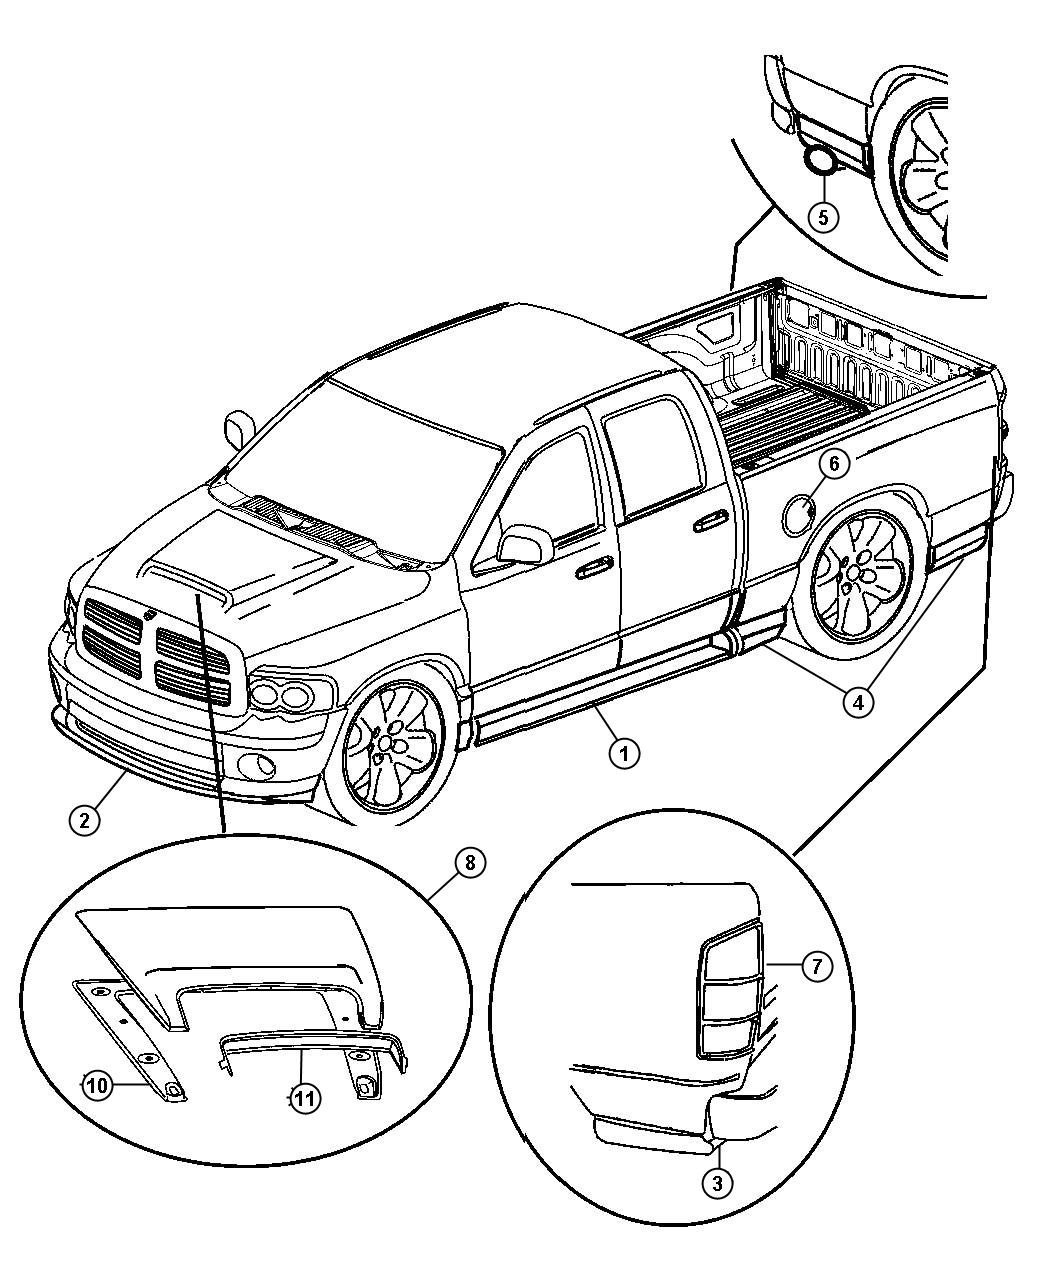 Dodge Ram Decal Kit Qtr Used For Qtr And Tailgate